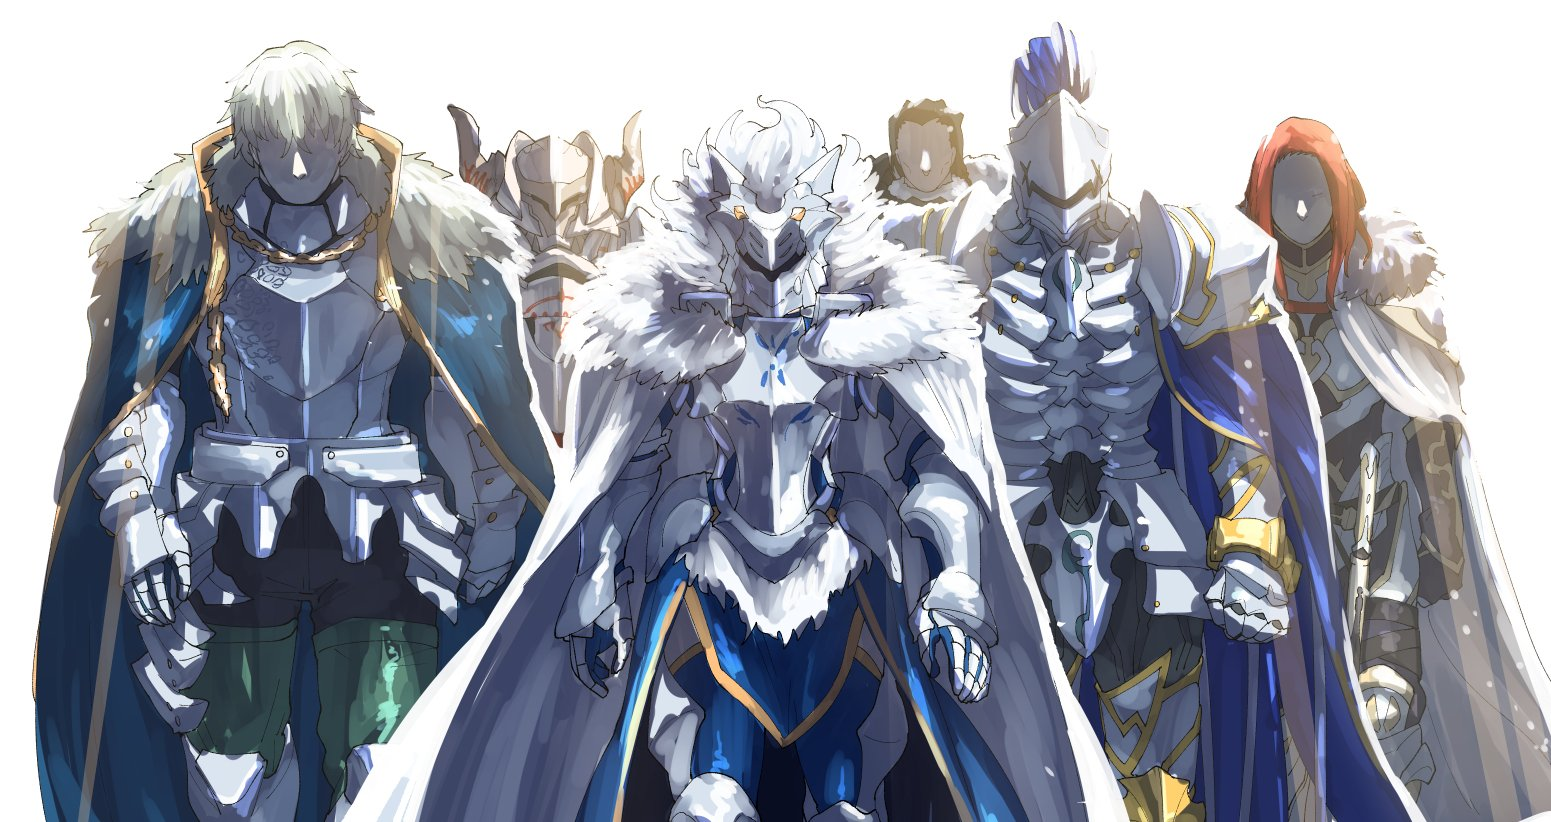 Agravain artoria pendragon lancer berserker gawain for 12 knights of the round table characters